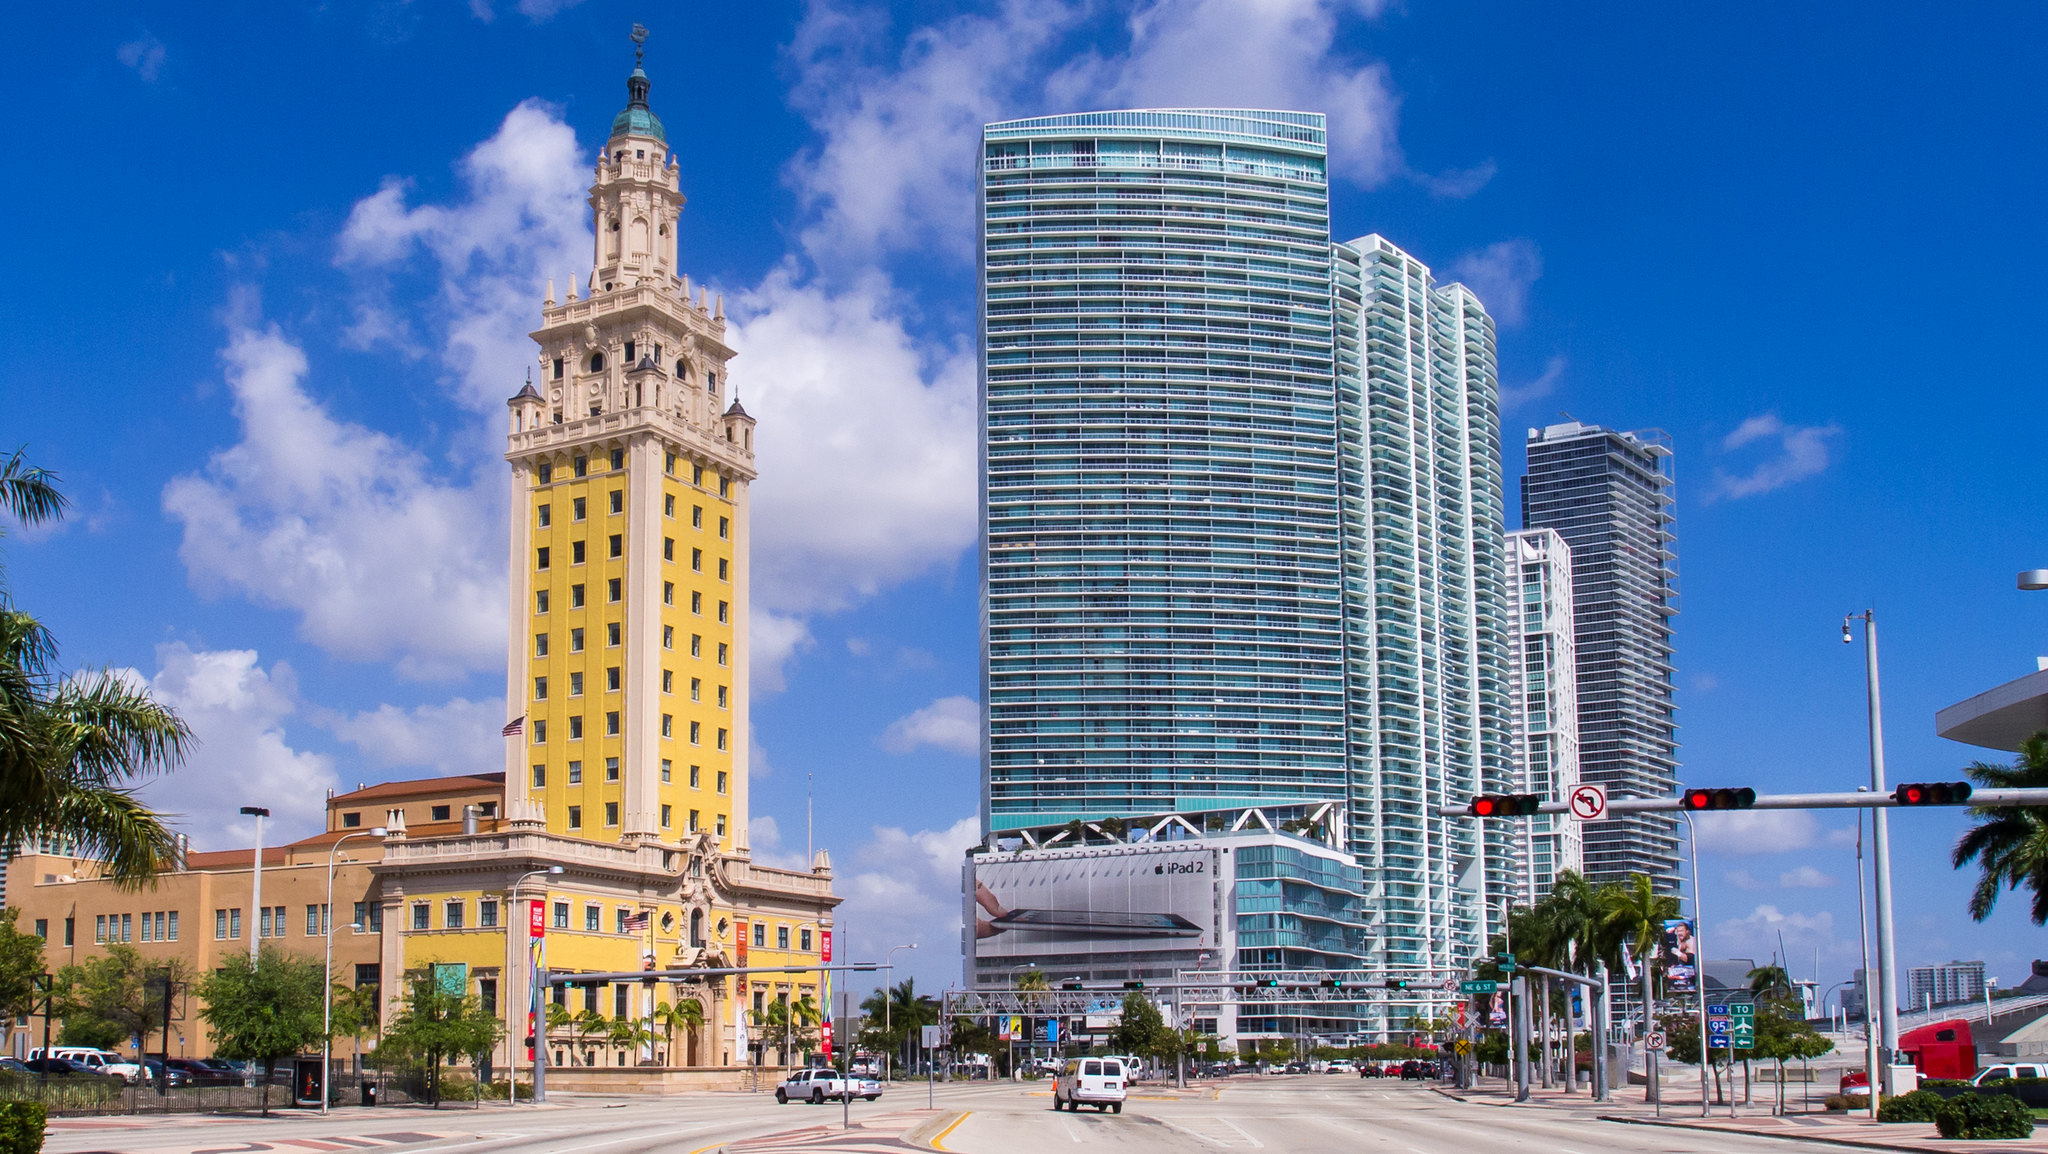 Miami Freedom tower next to a modern building in Downtown Miami